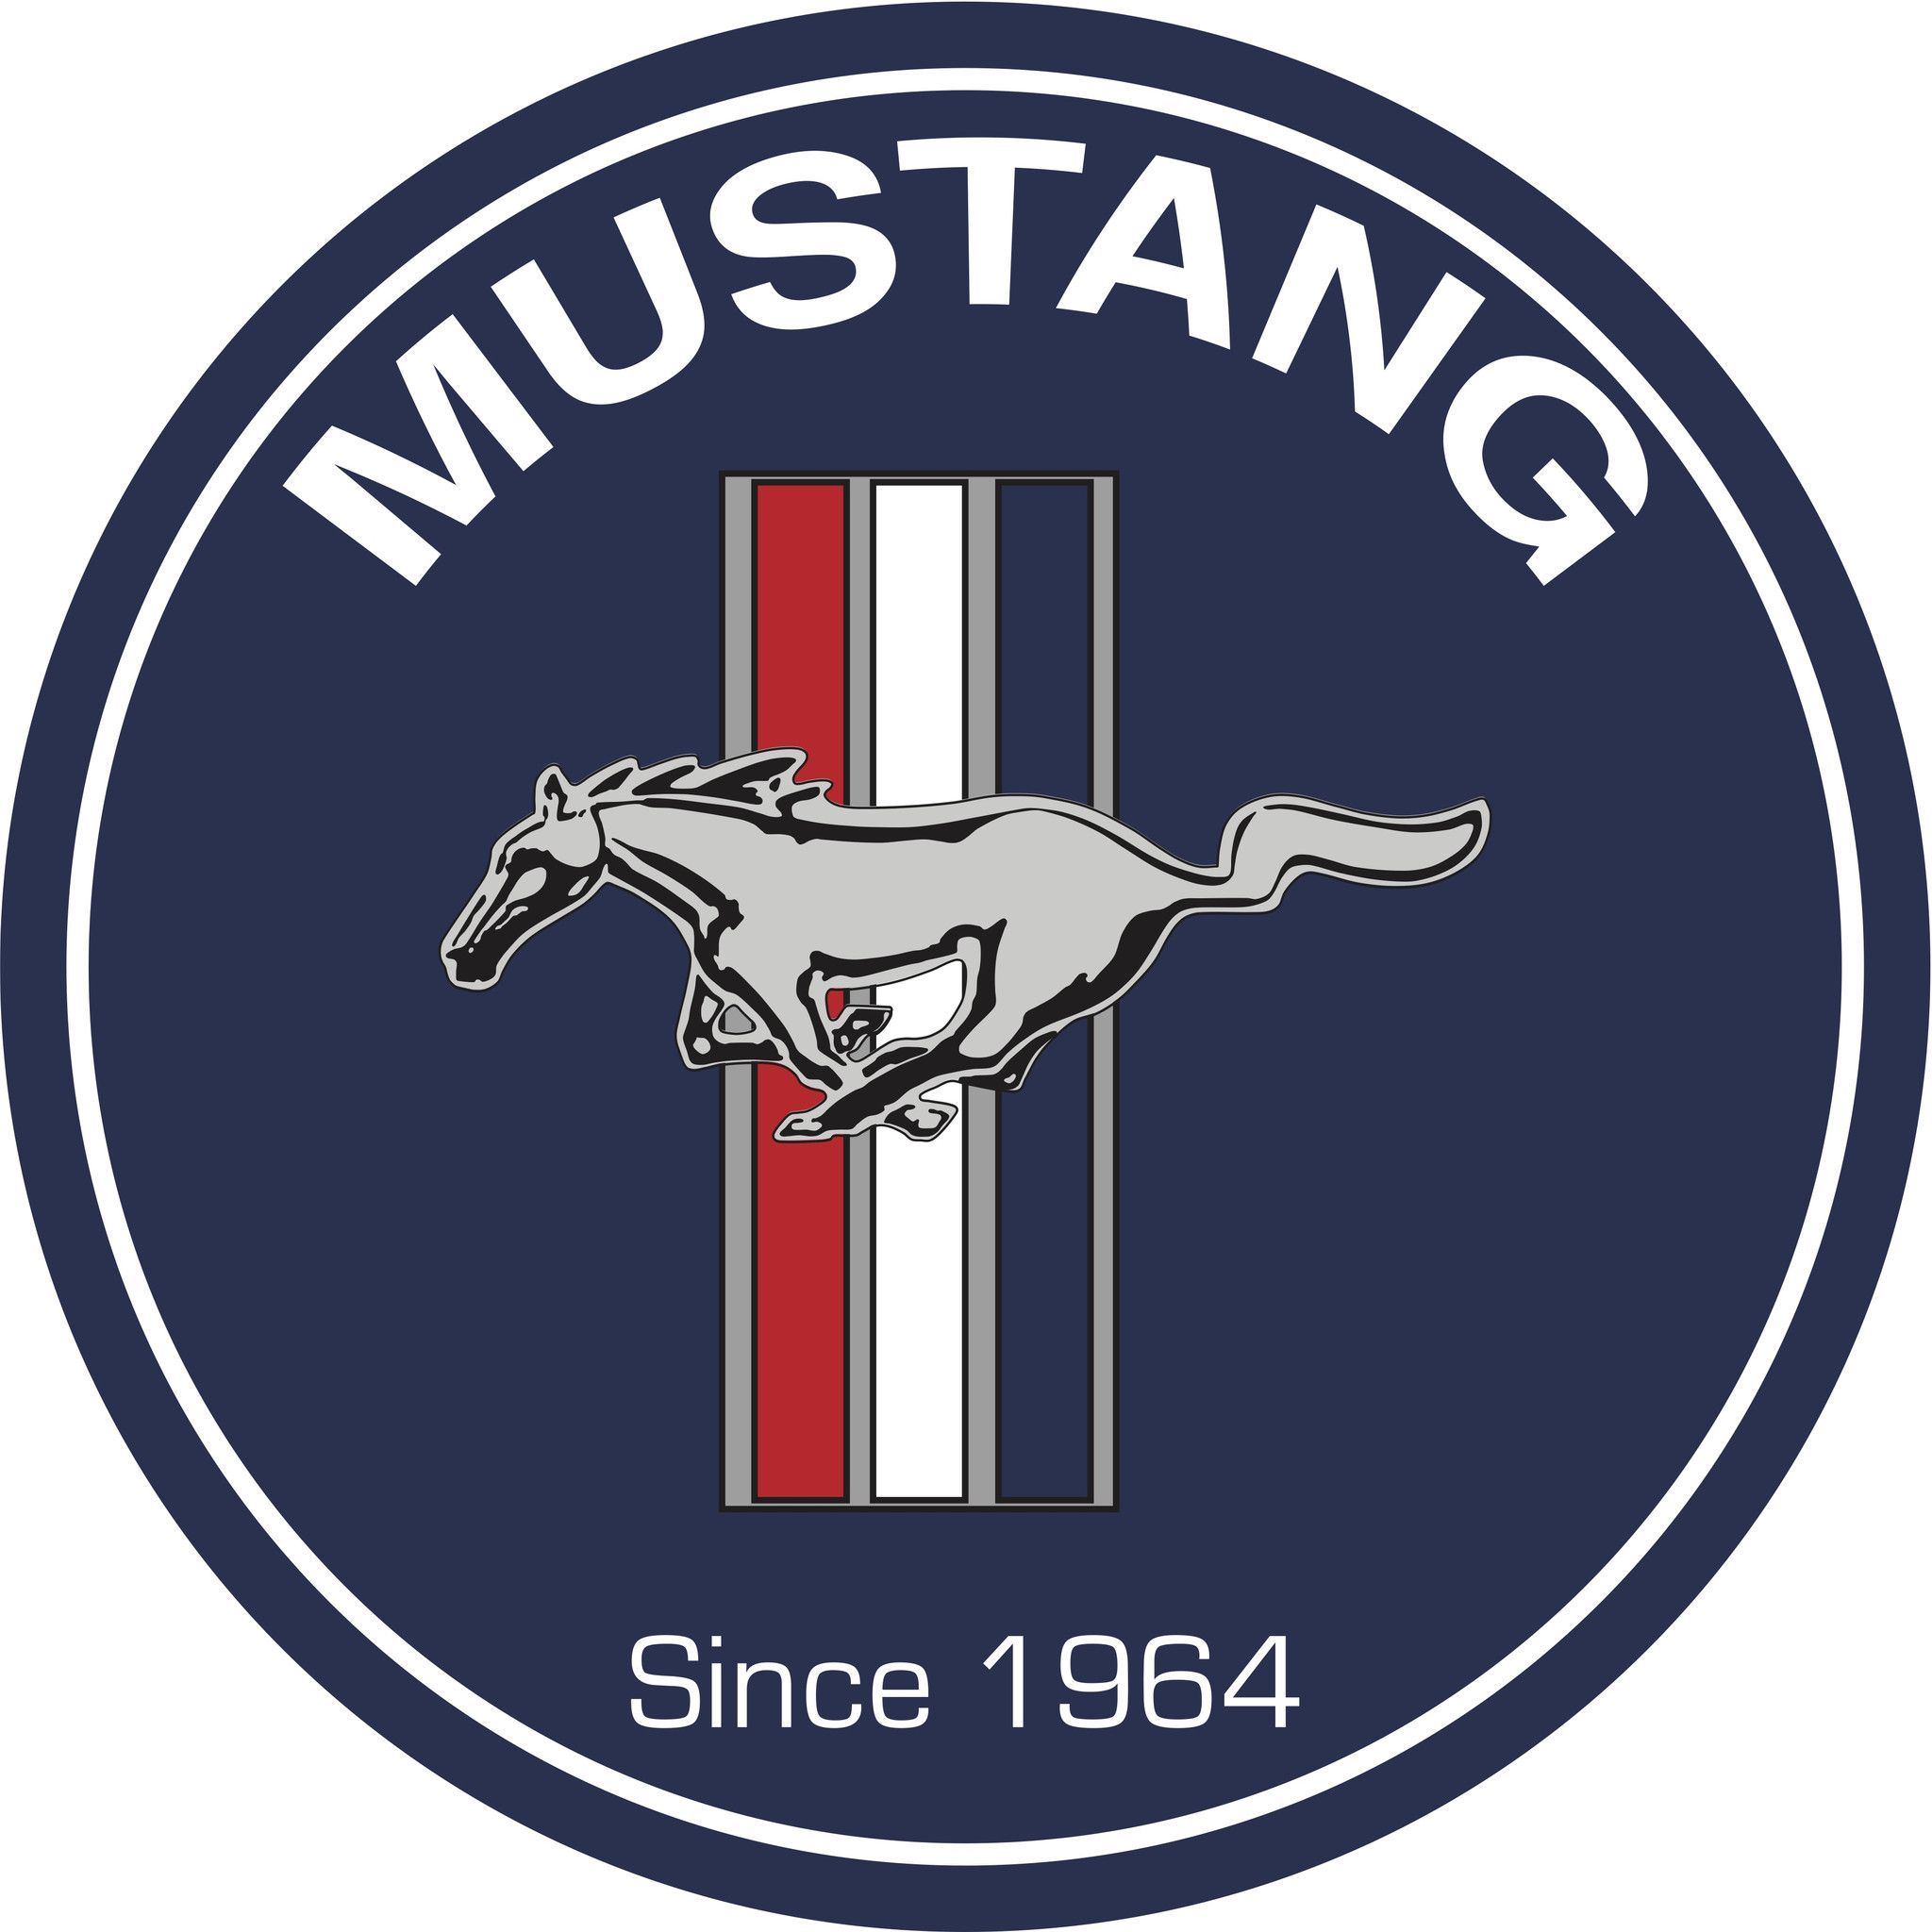 Ford mustang 7 round metal sign ford mustang mustang and ford 7 diameter metal sign classic ford mustang logo perfect size sign great compliment for other voltagebd Gallery